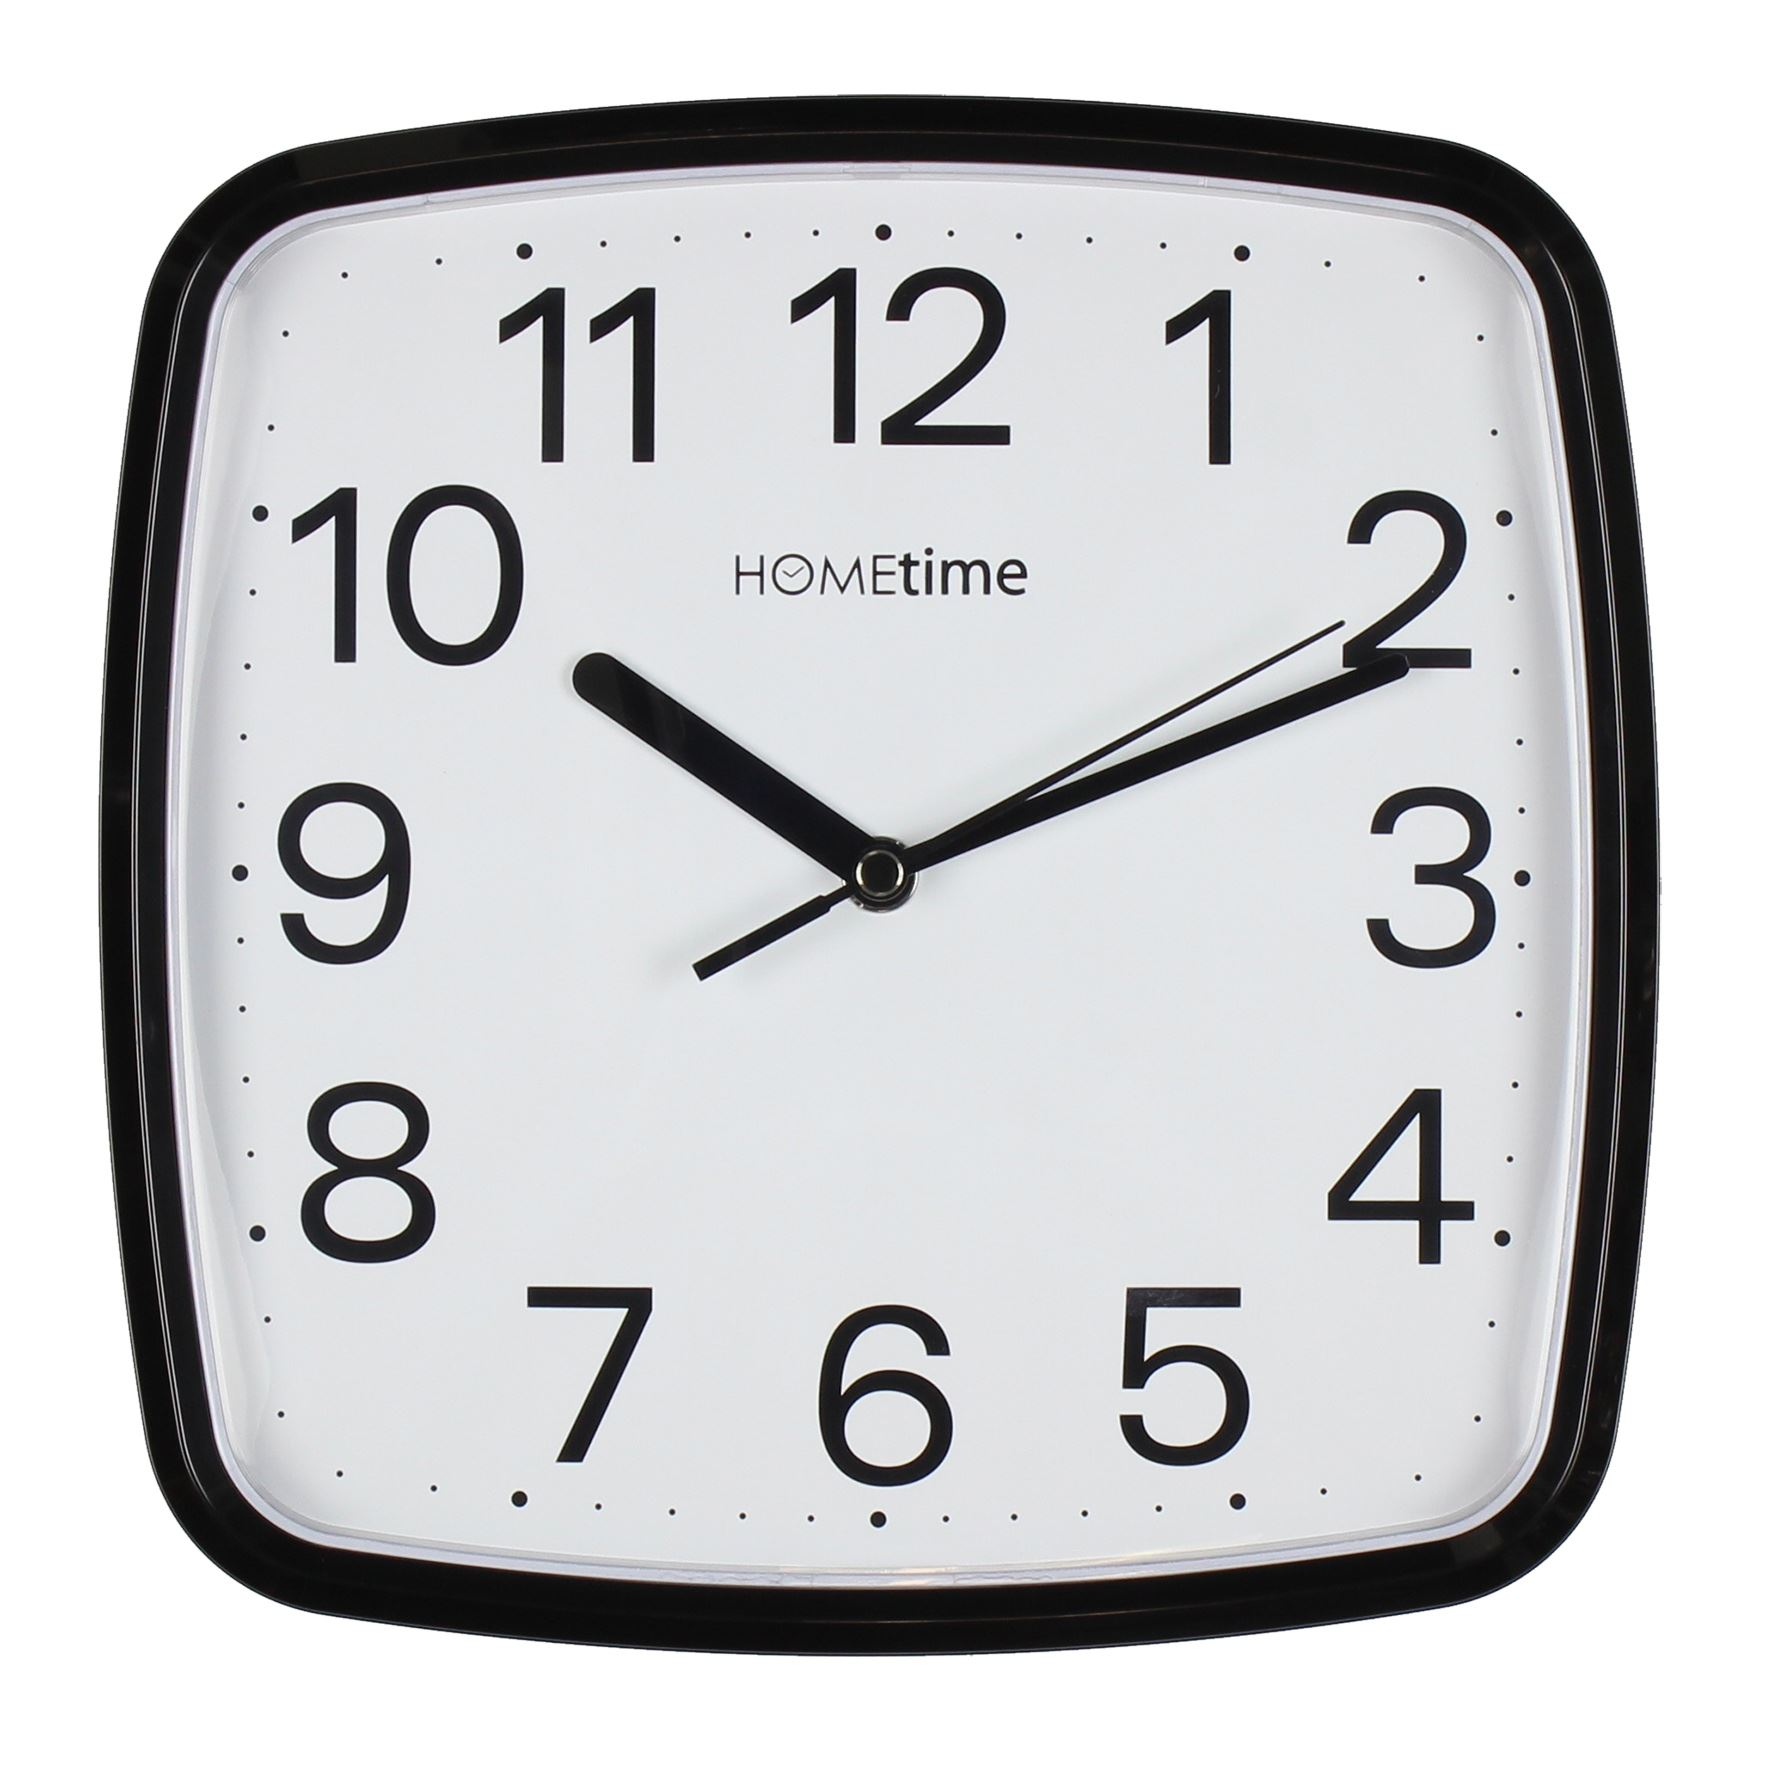 Hometime Plastic Black Wall Clock With Sweep